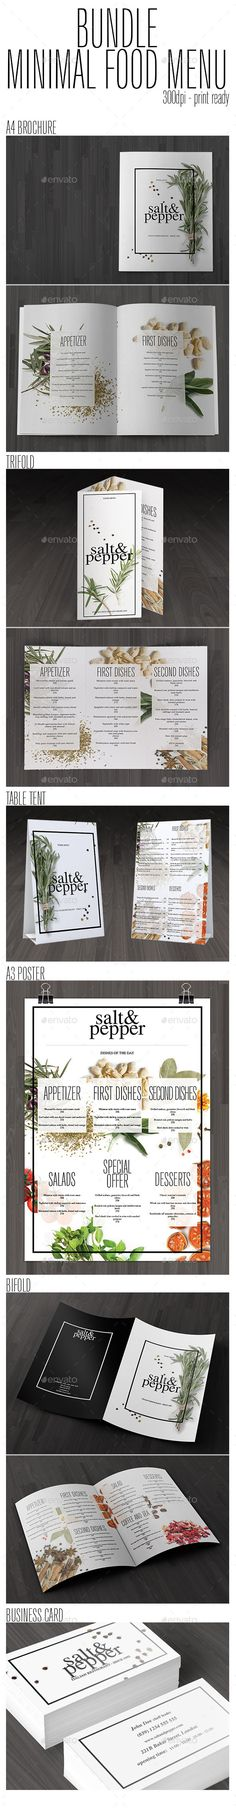 Bundle Minimal Food Menu - Food Menus Print Templates